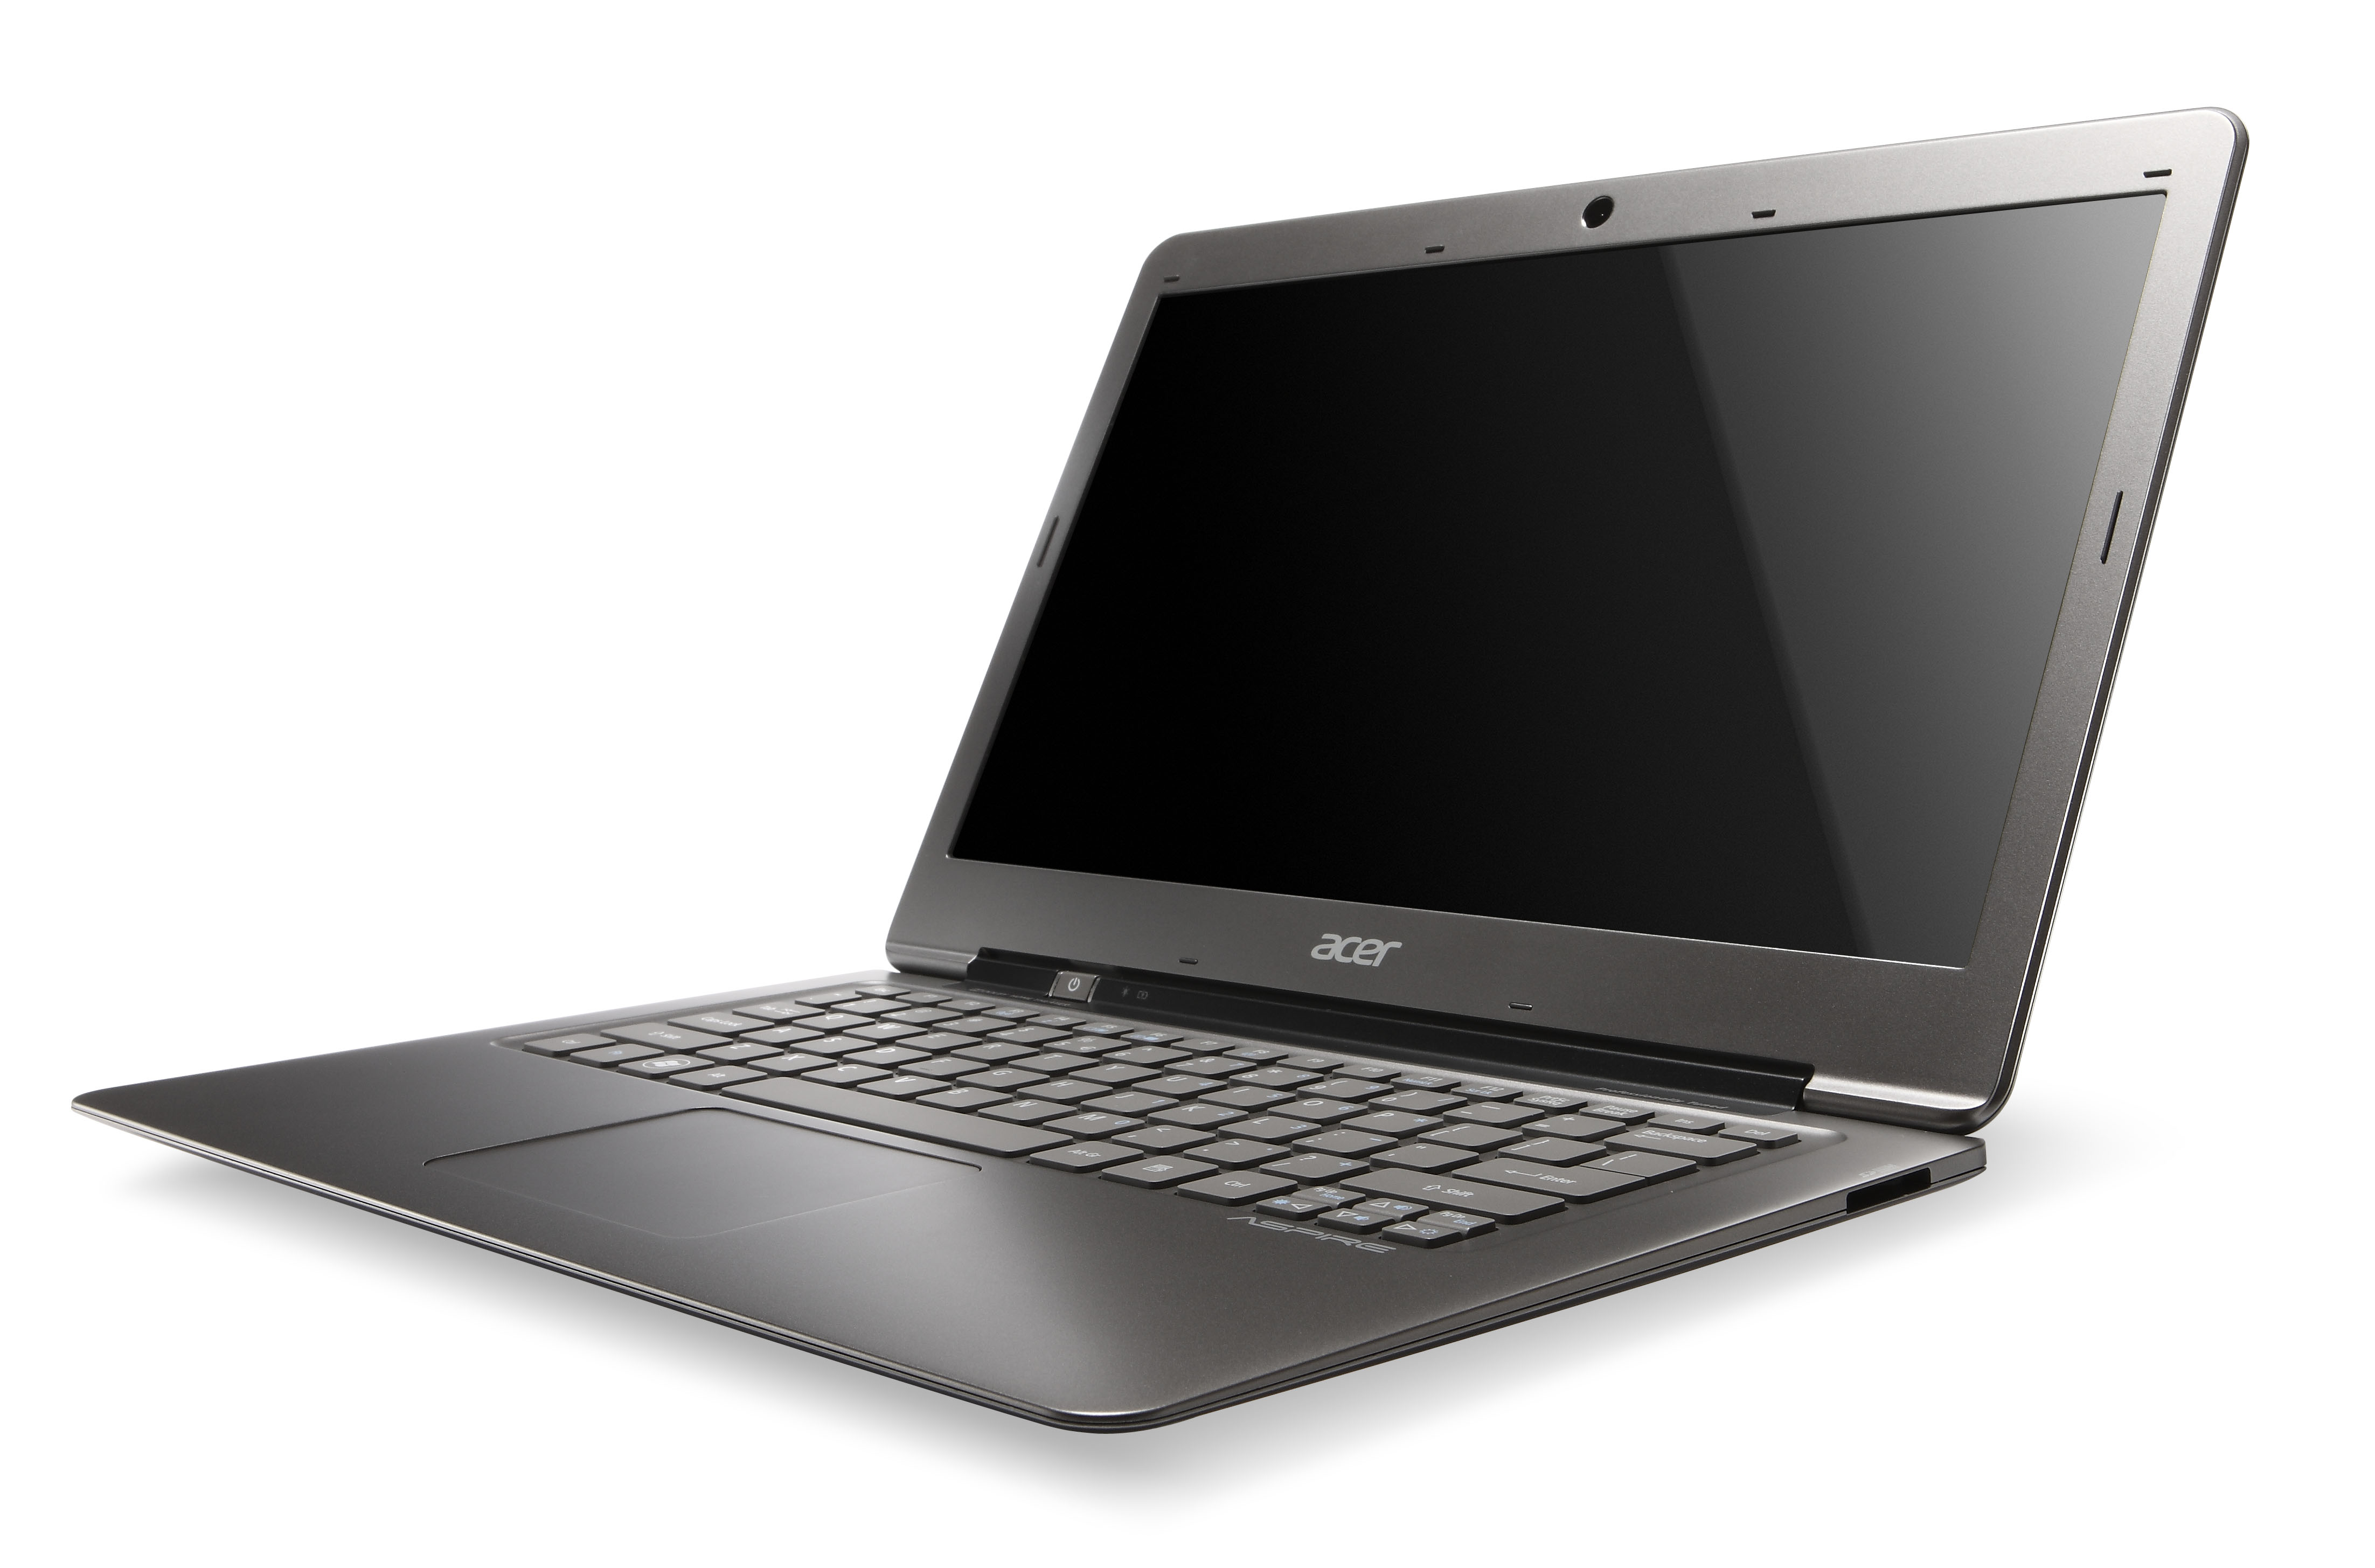 Acer Announces $899 Price For Aspire S3 Ultrabook